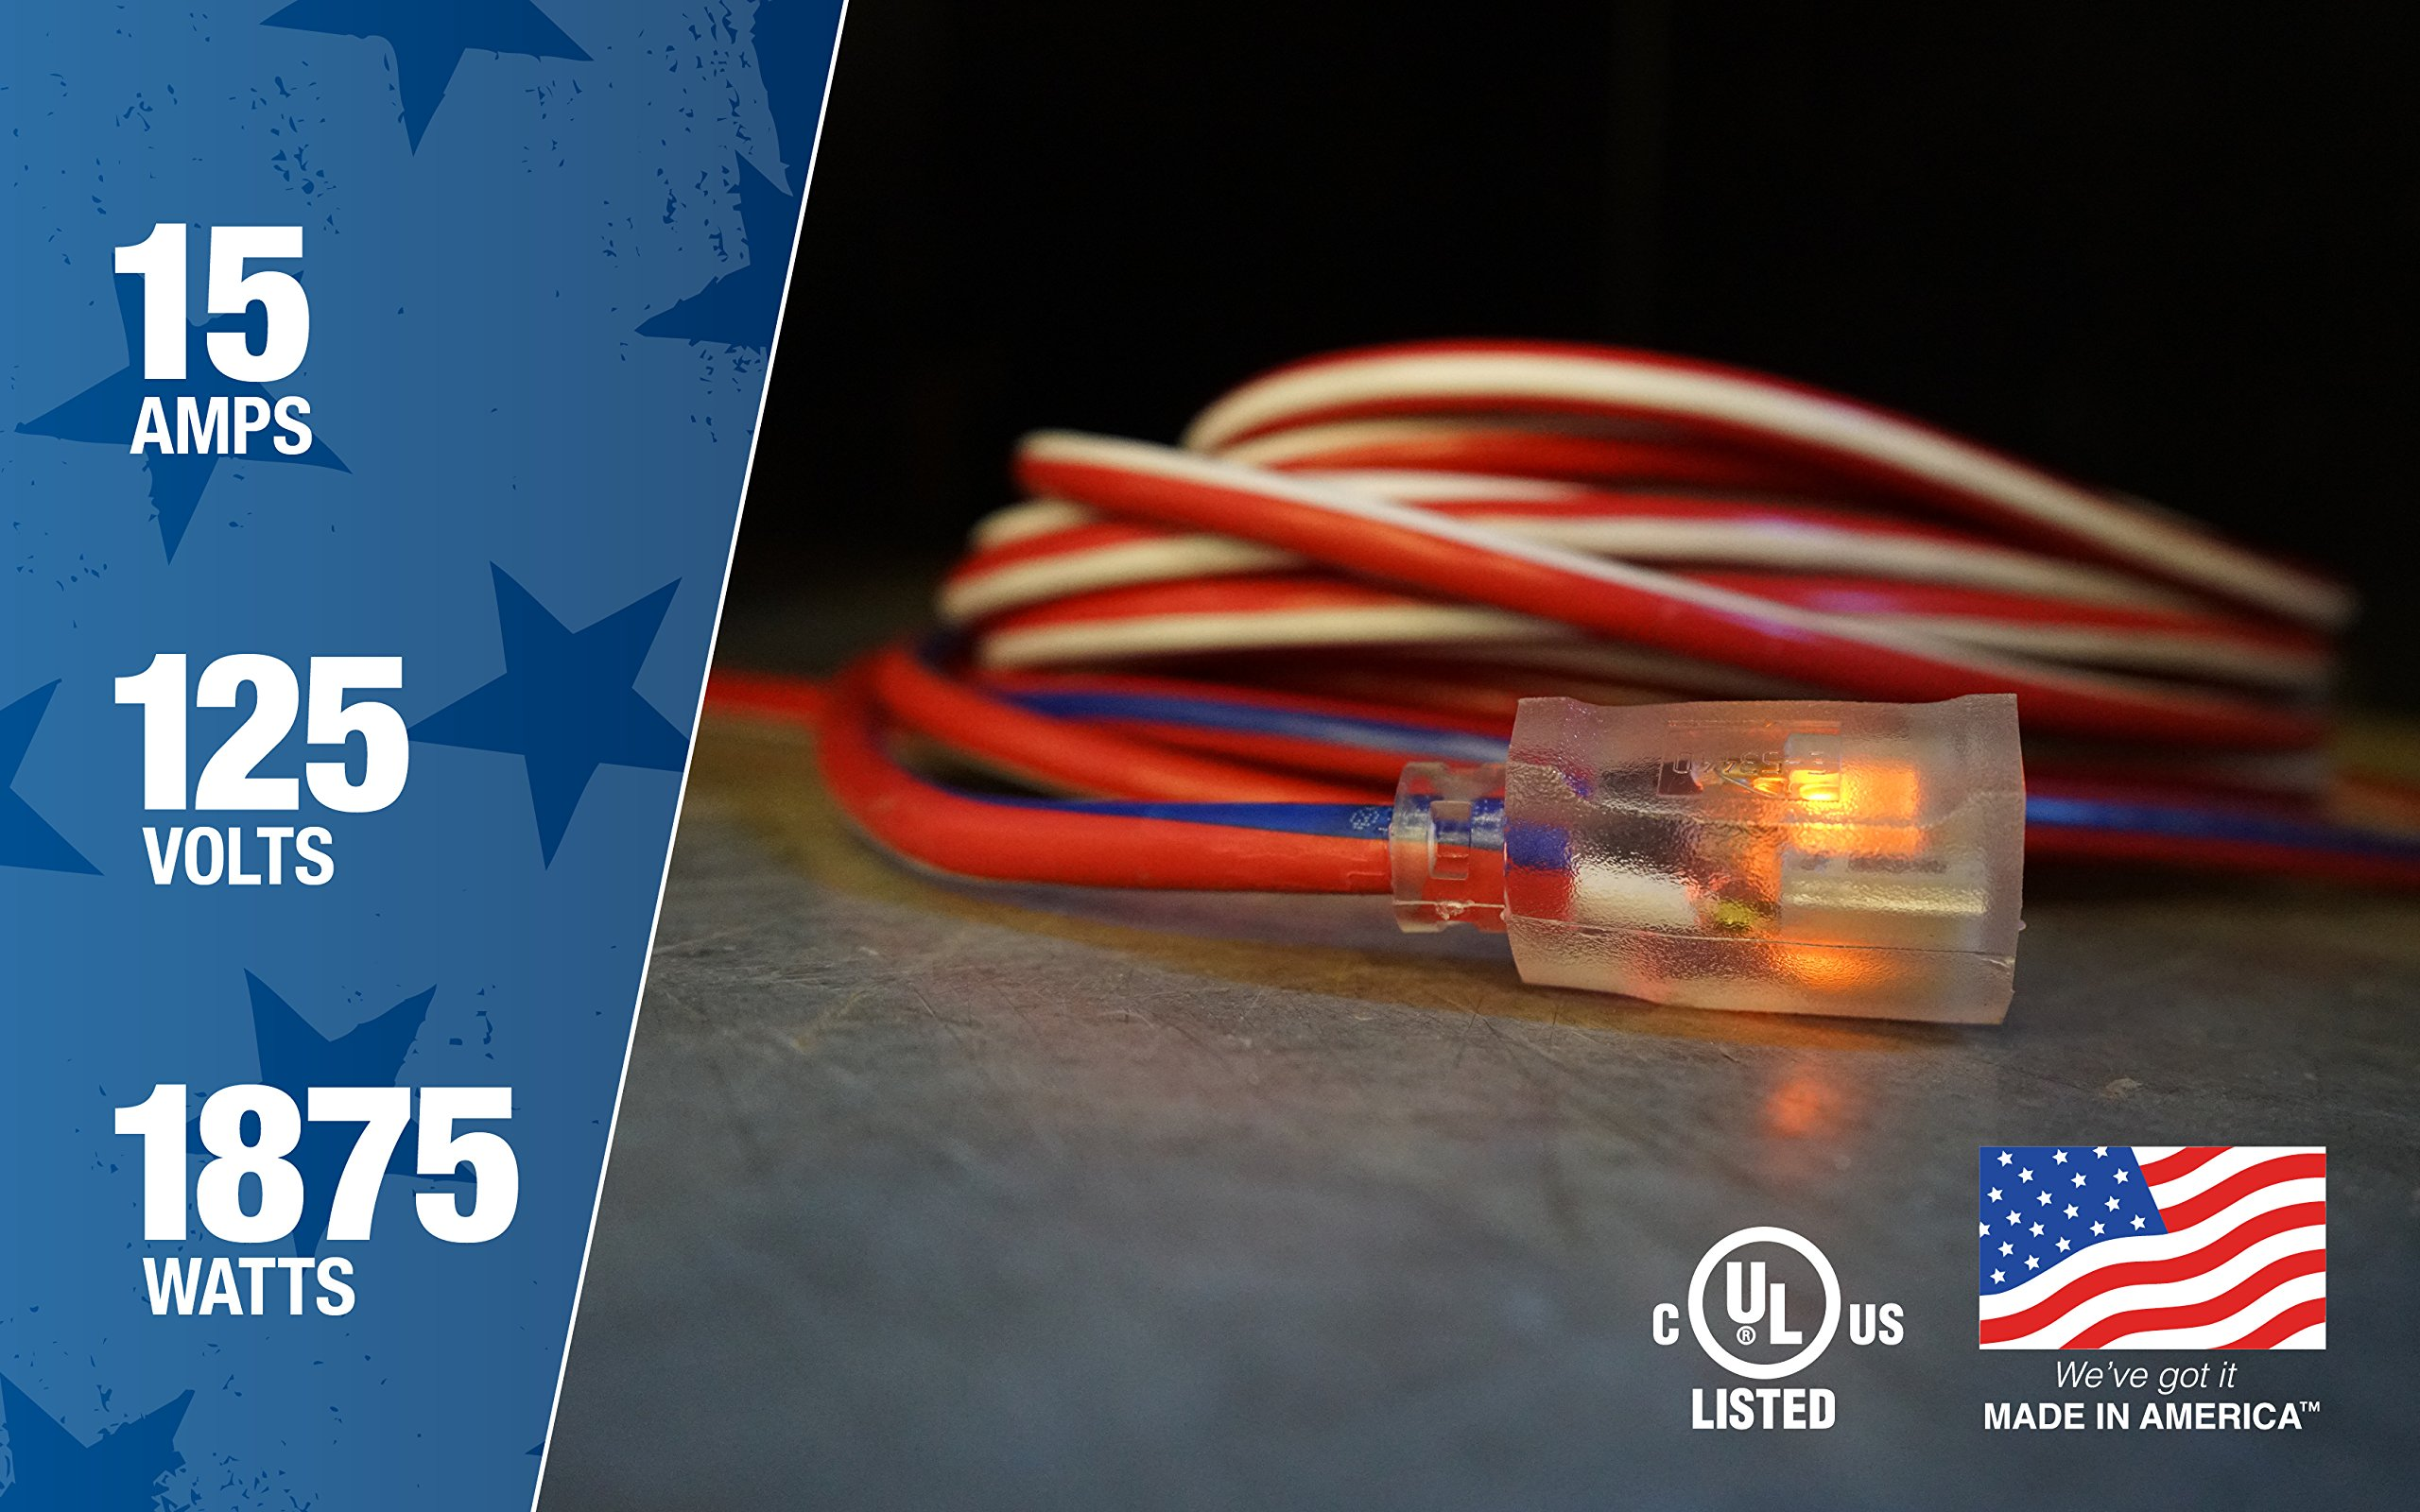 Southwire 2549SWUSA1 100-Feet Contractor Grade 12/3 with Lighted End American Made Extension Cord by Southwire (Image #6)